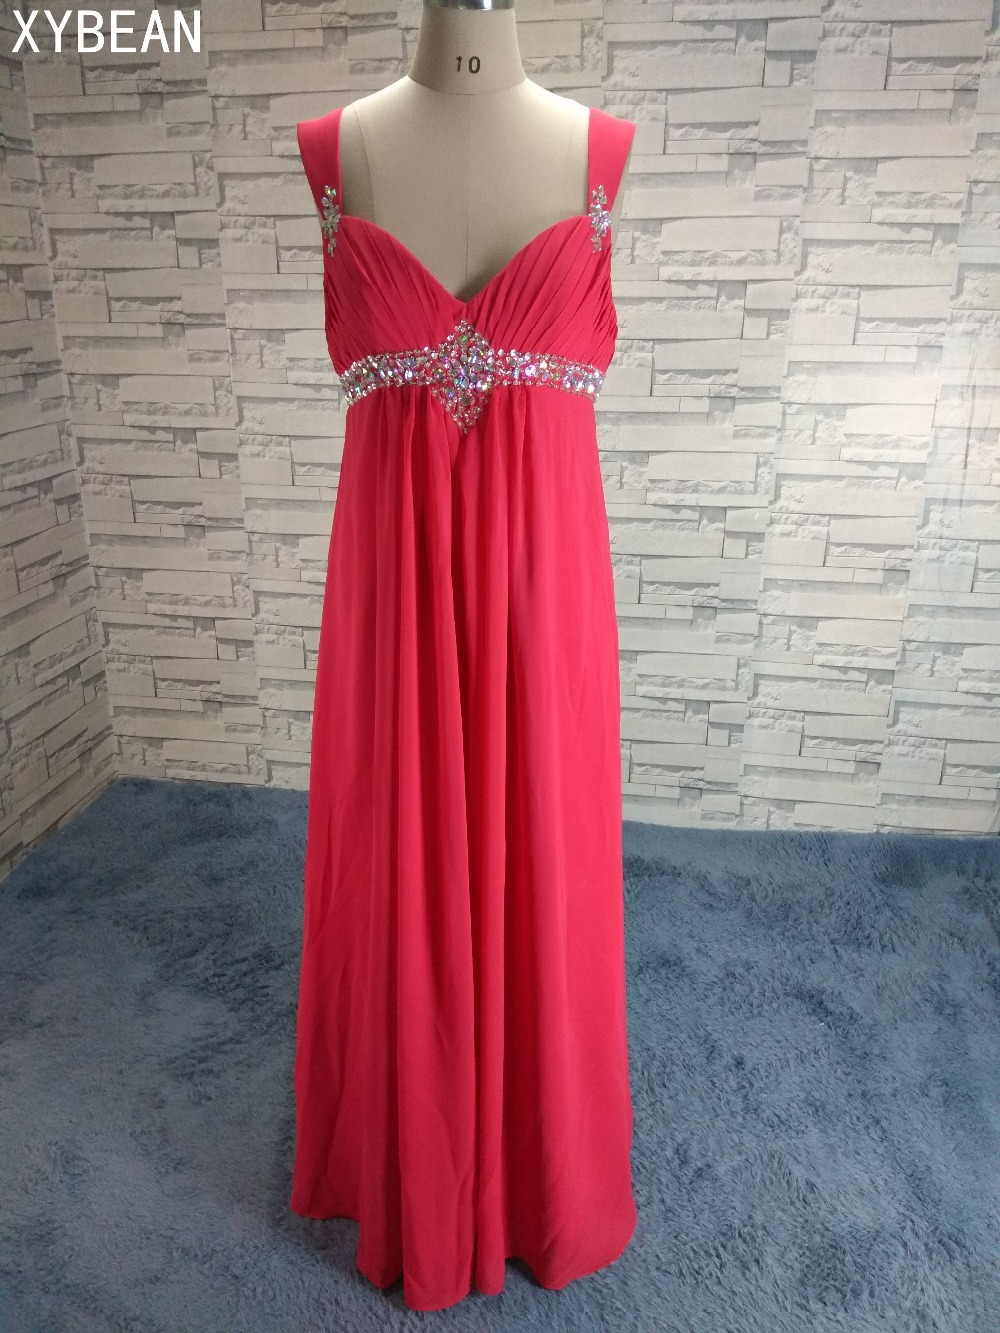 Free Shipping ! 2018 New Arrival Beading Sashes Chiffon Long prom Dresses  Size 4 18-in Prom Dresses from Weddings   Events on Aliexpress.com  7317d334a0d9